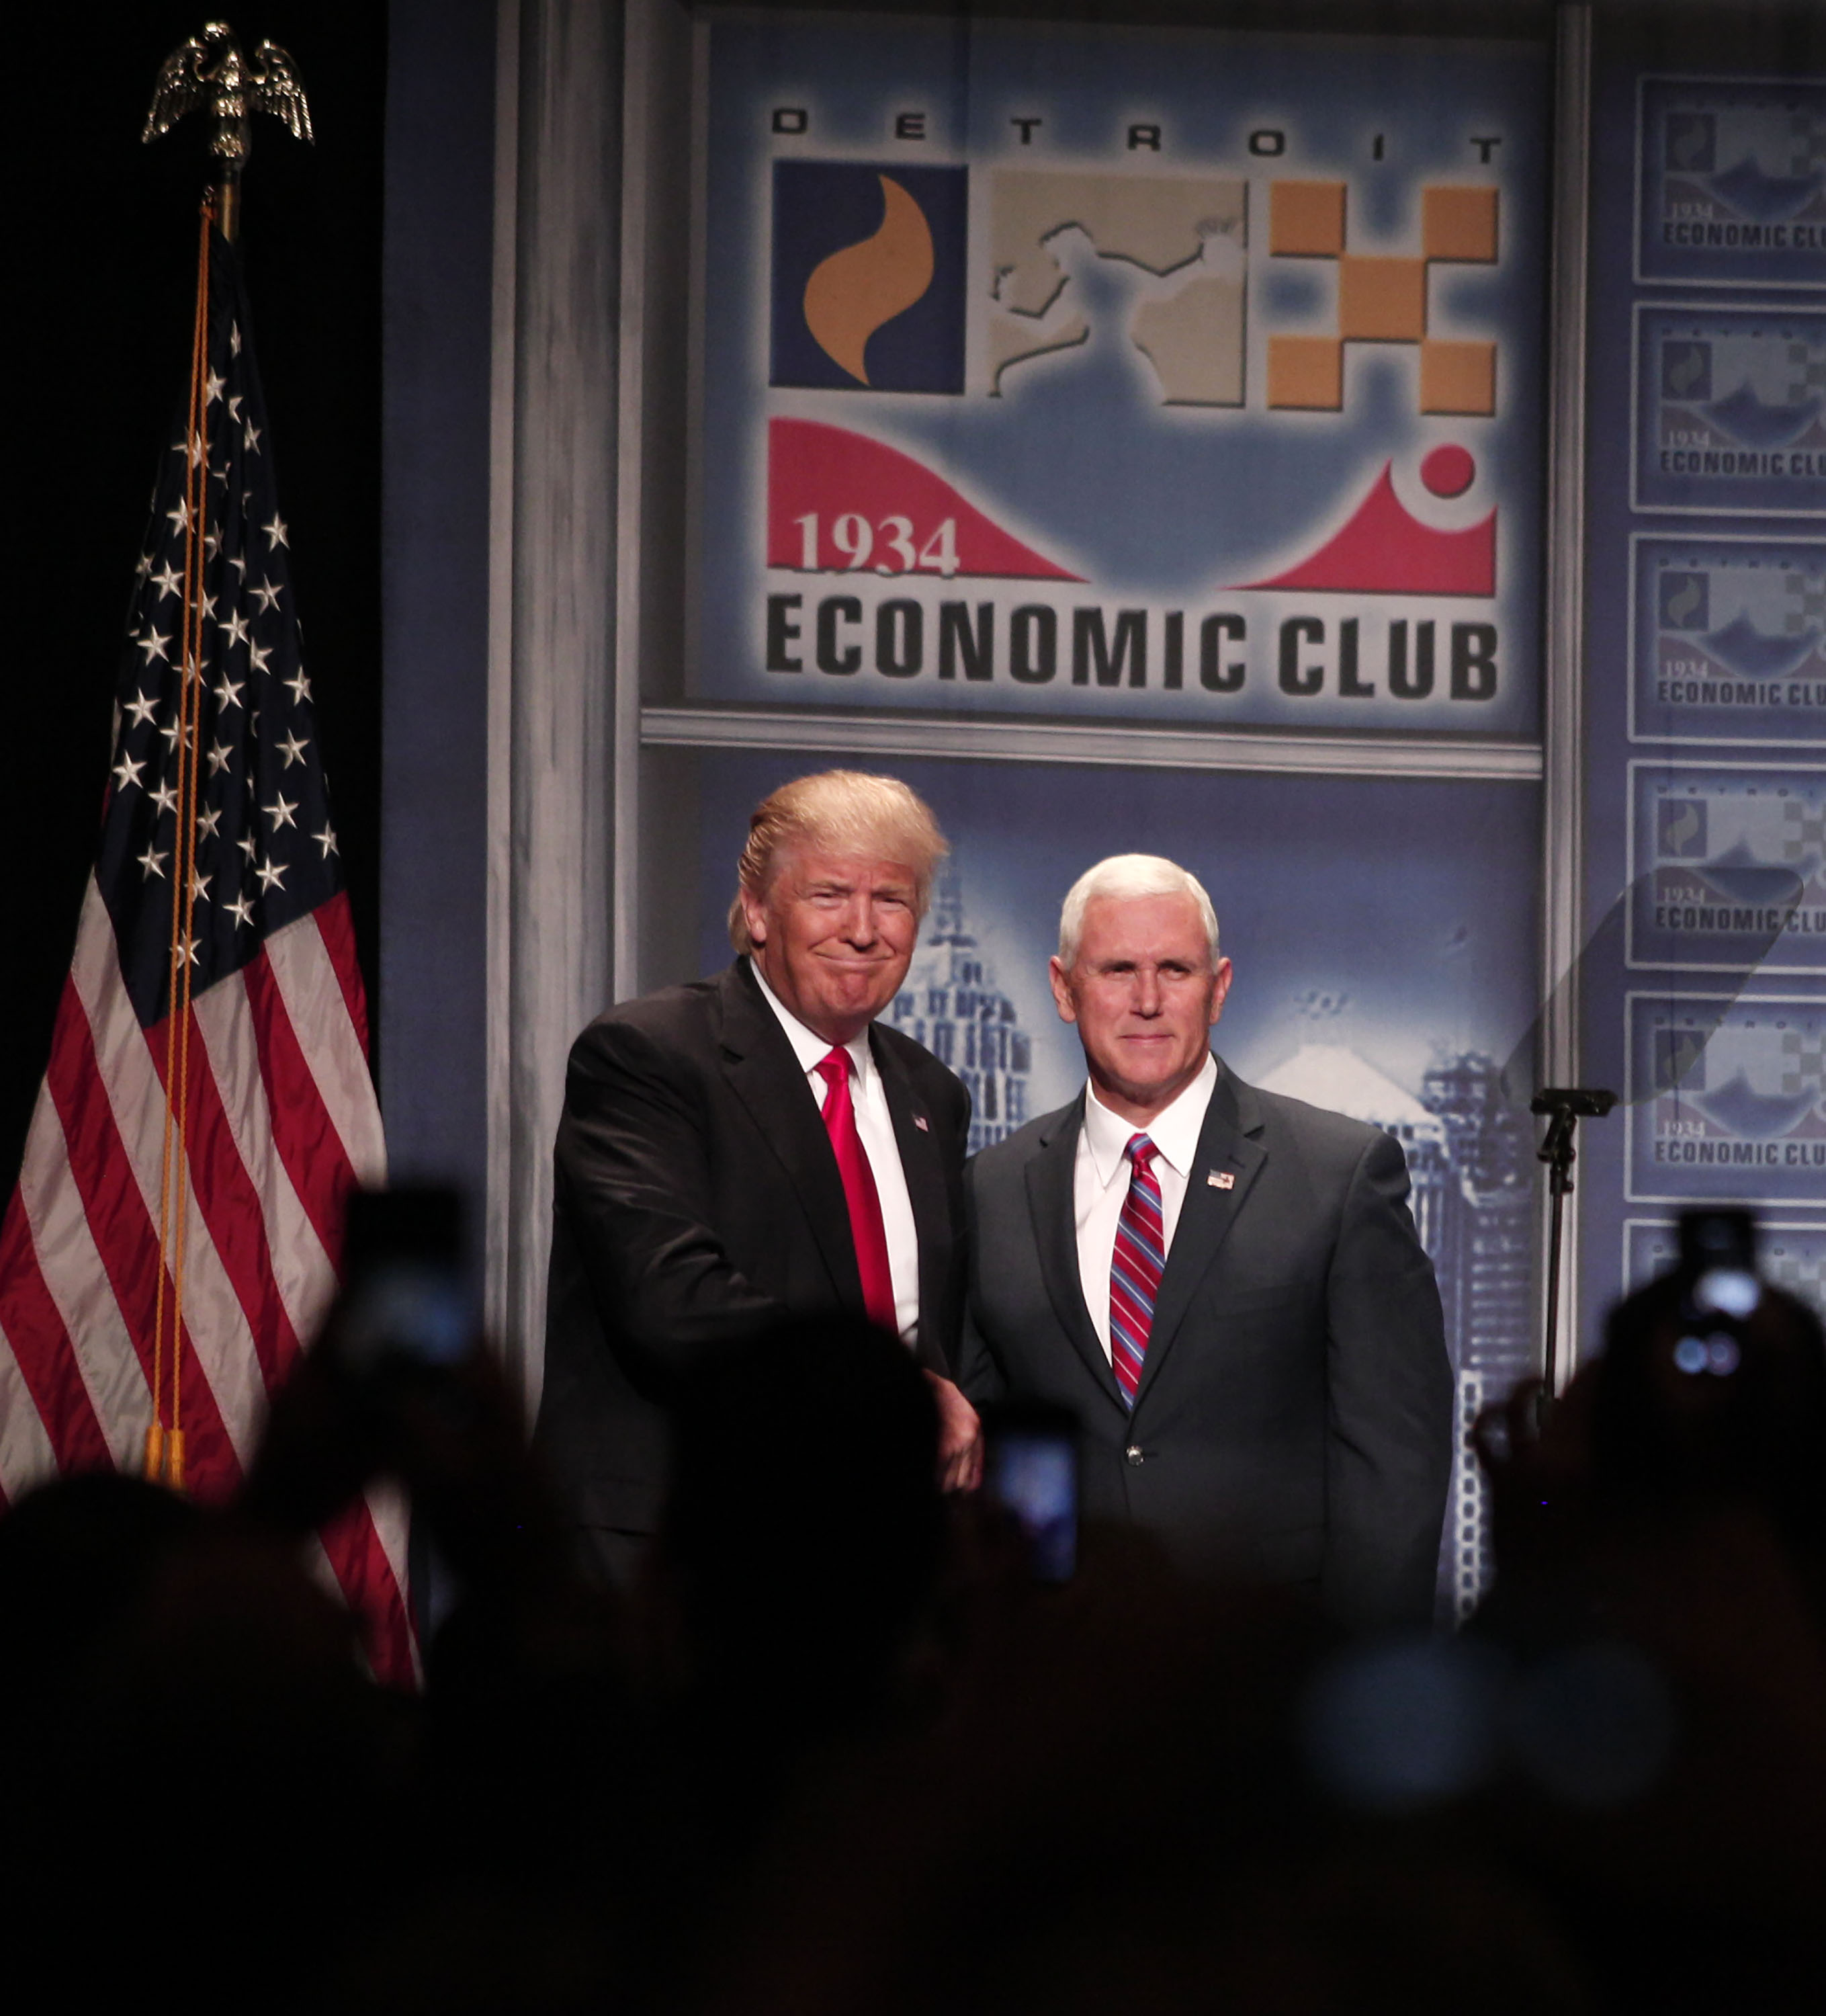 Republican presidential candidate Donald Trump (left) and his vice presidential running mate Indiana Gov. Mike Pence stand on stage together before Trump delivers an economic policy address detailing his economic plan at the Detroit Economic Club August 8